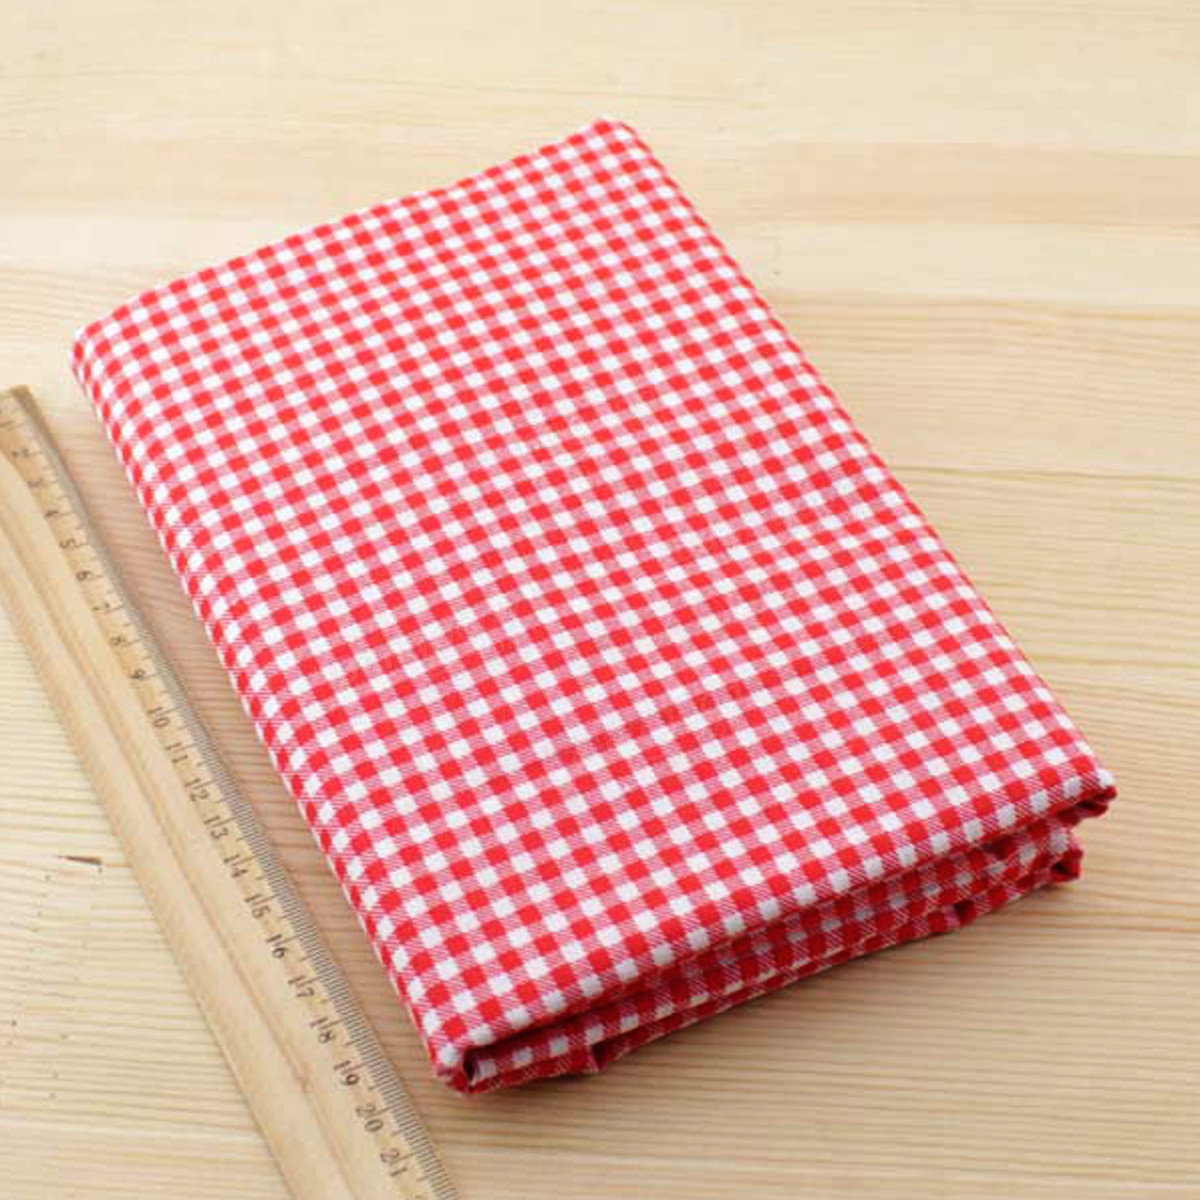 NEW Red Cotton 7 Assorted Pre Cut 10 Squares Quilt Fabric DIY Craft Sewing New